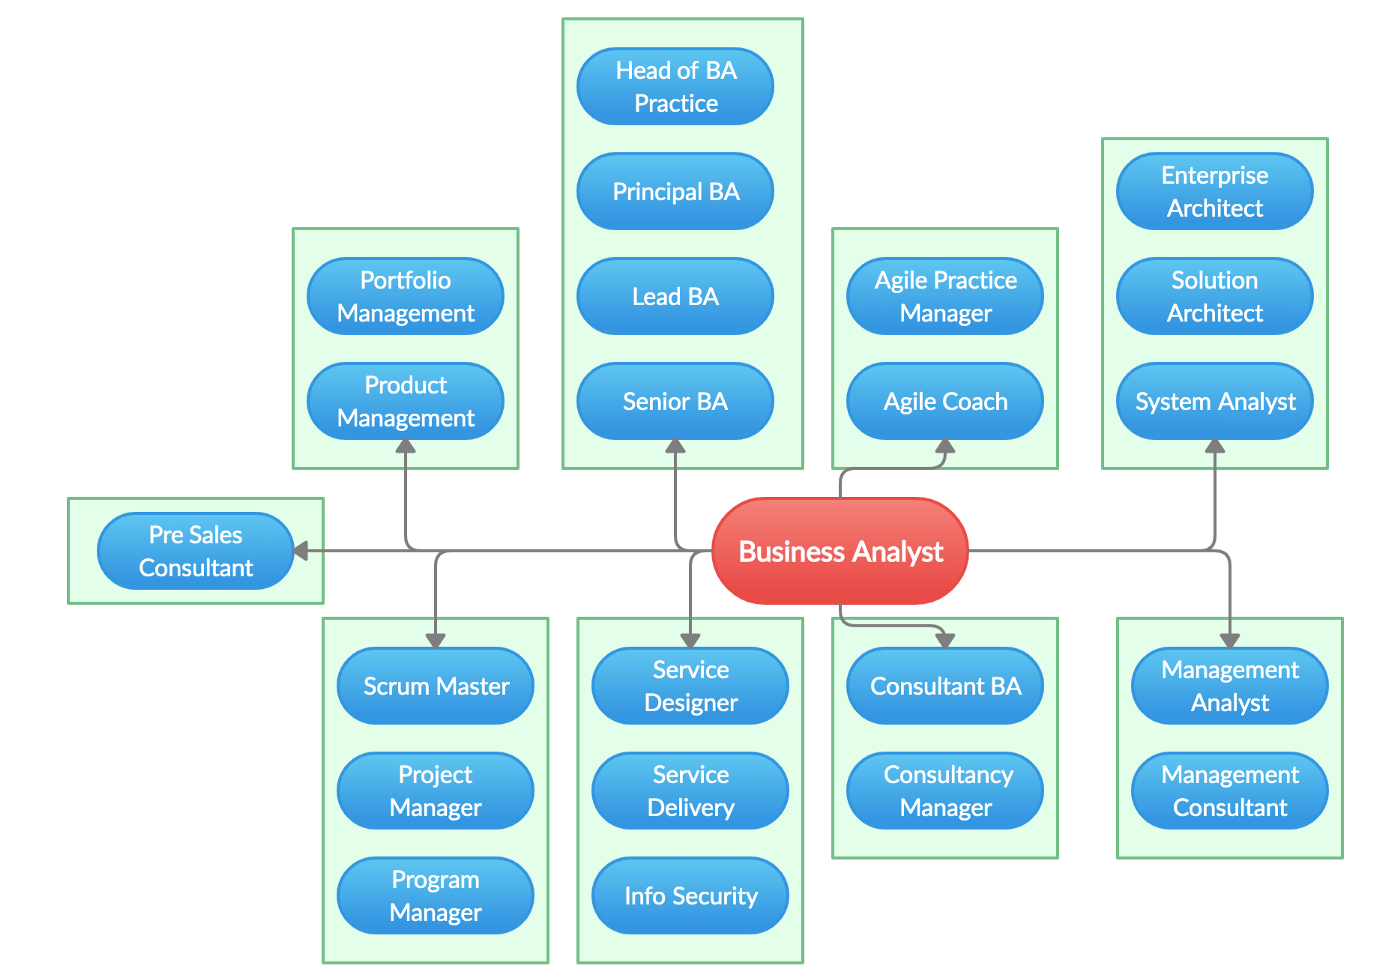 Career paths for Business Analysts